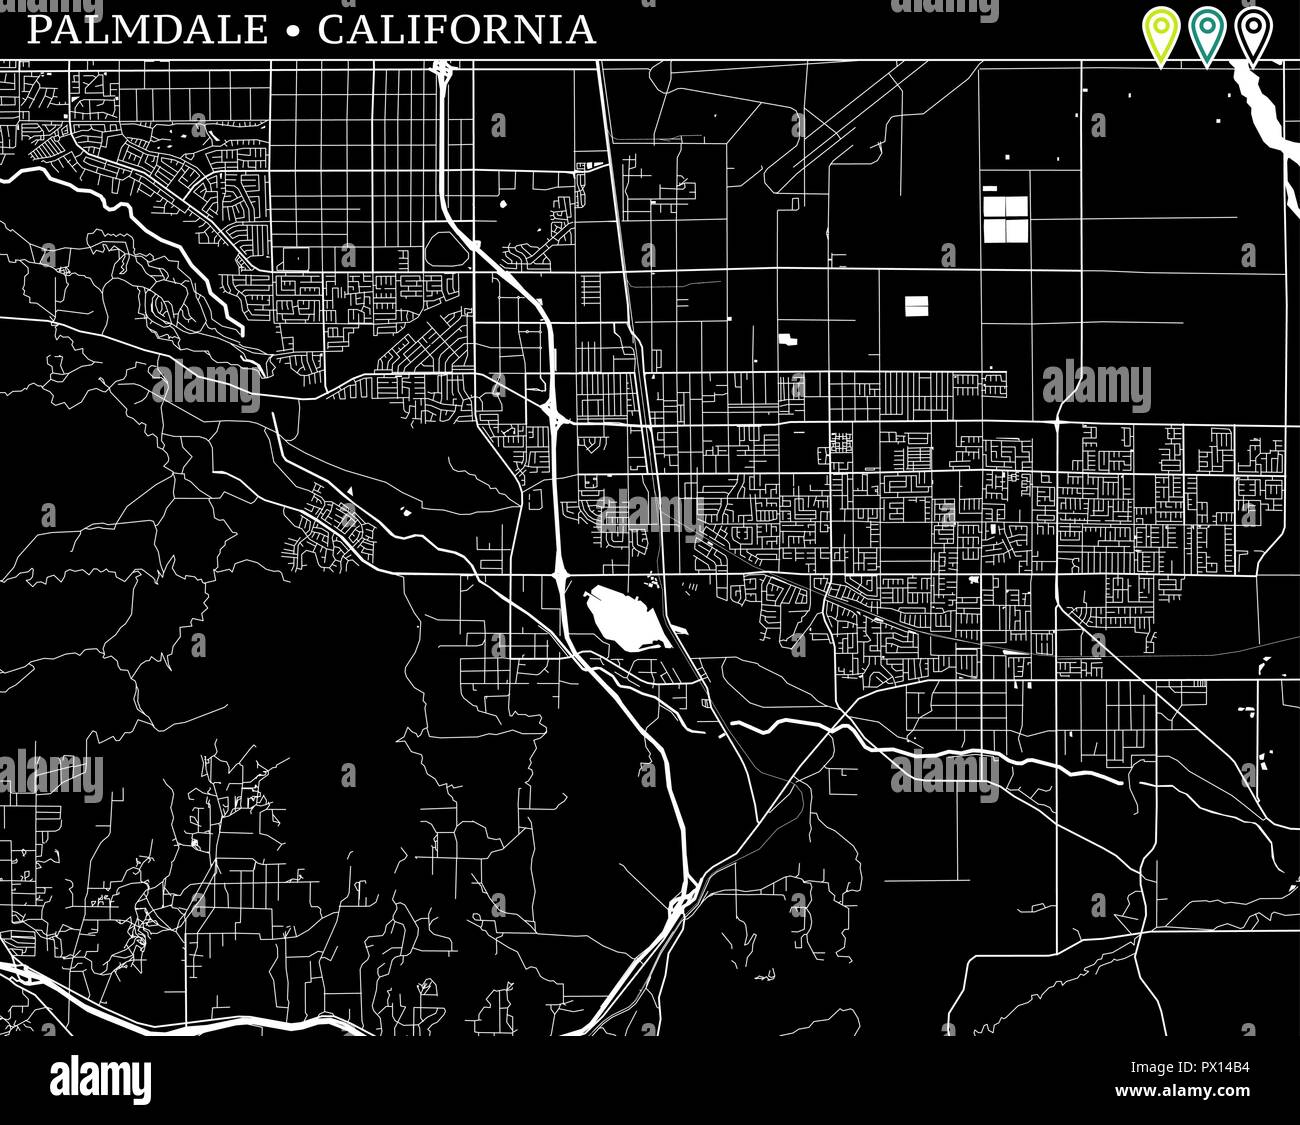 Simple map of Palmdale, California, USA. Black and white version for ...